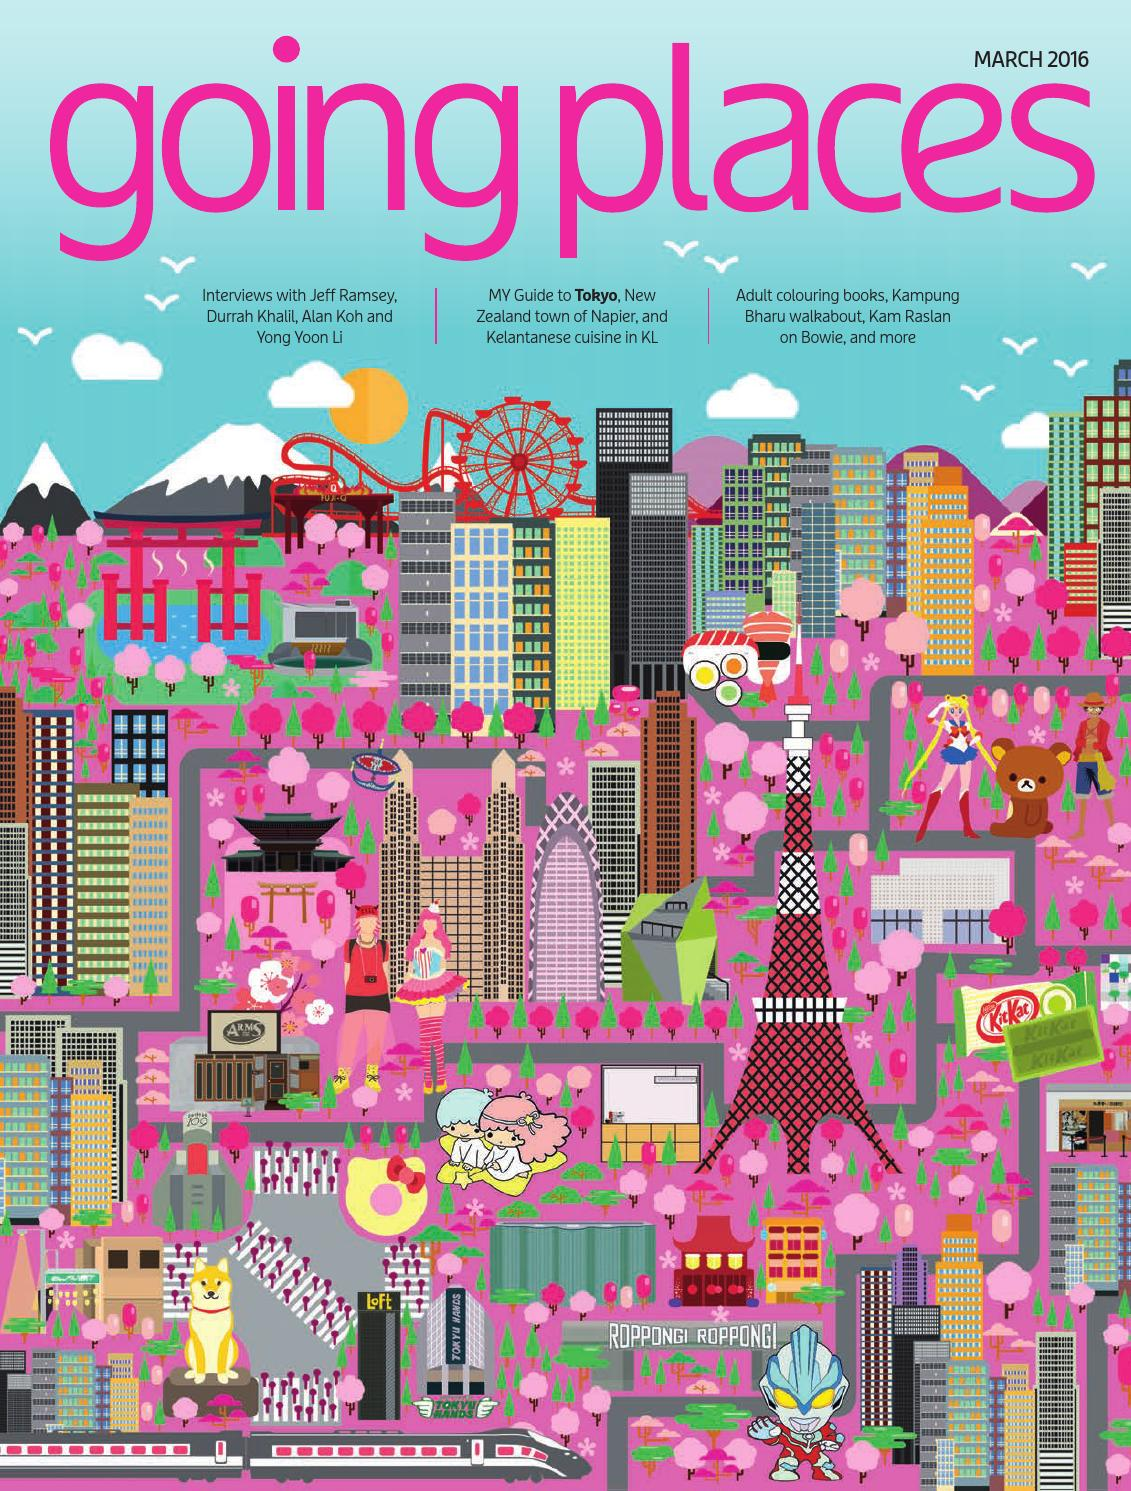 3f6a6b6e8b Going Places March 2016 by Spafax Malaysia - issuu